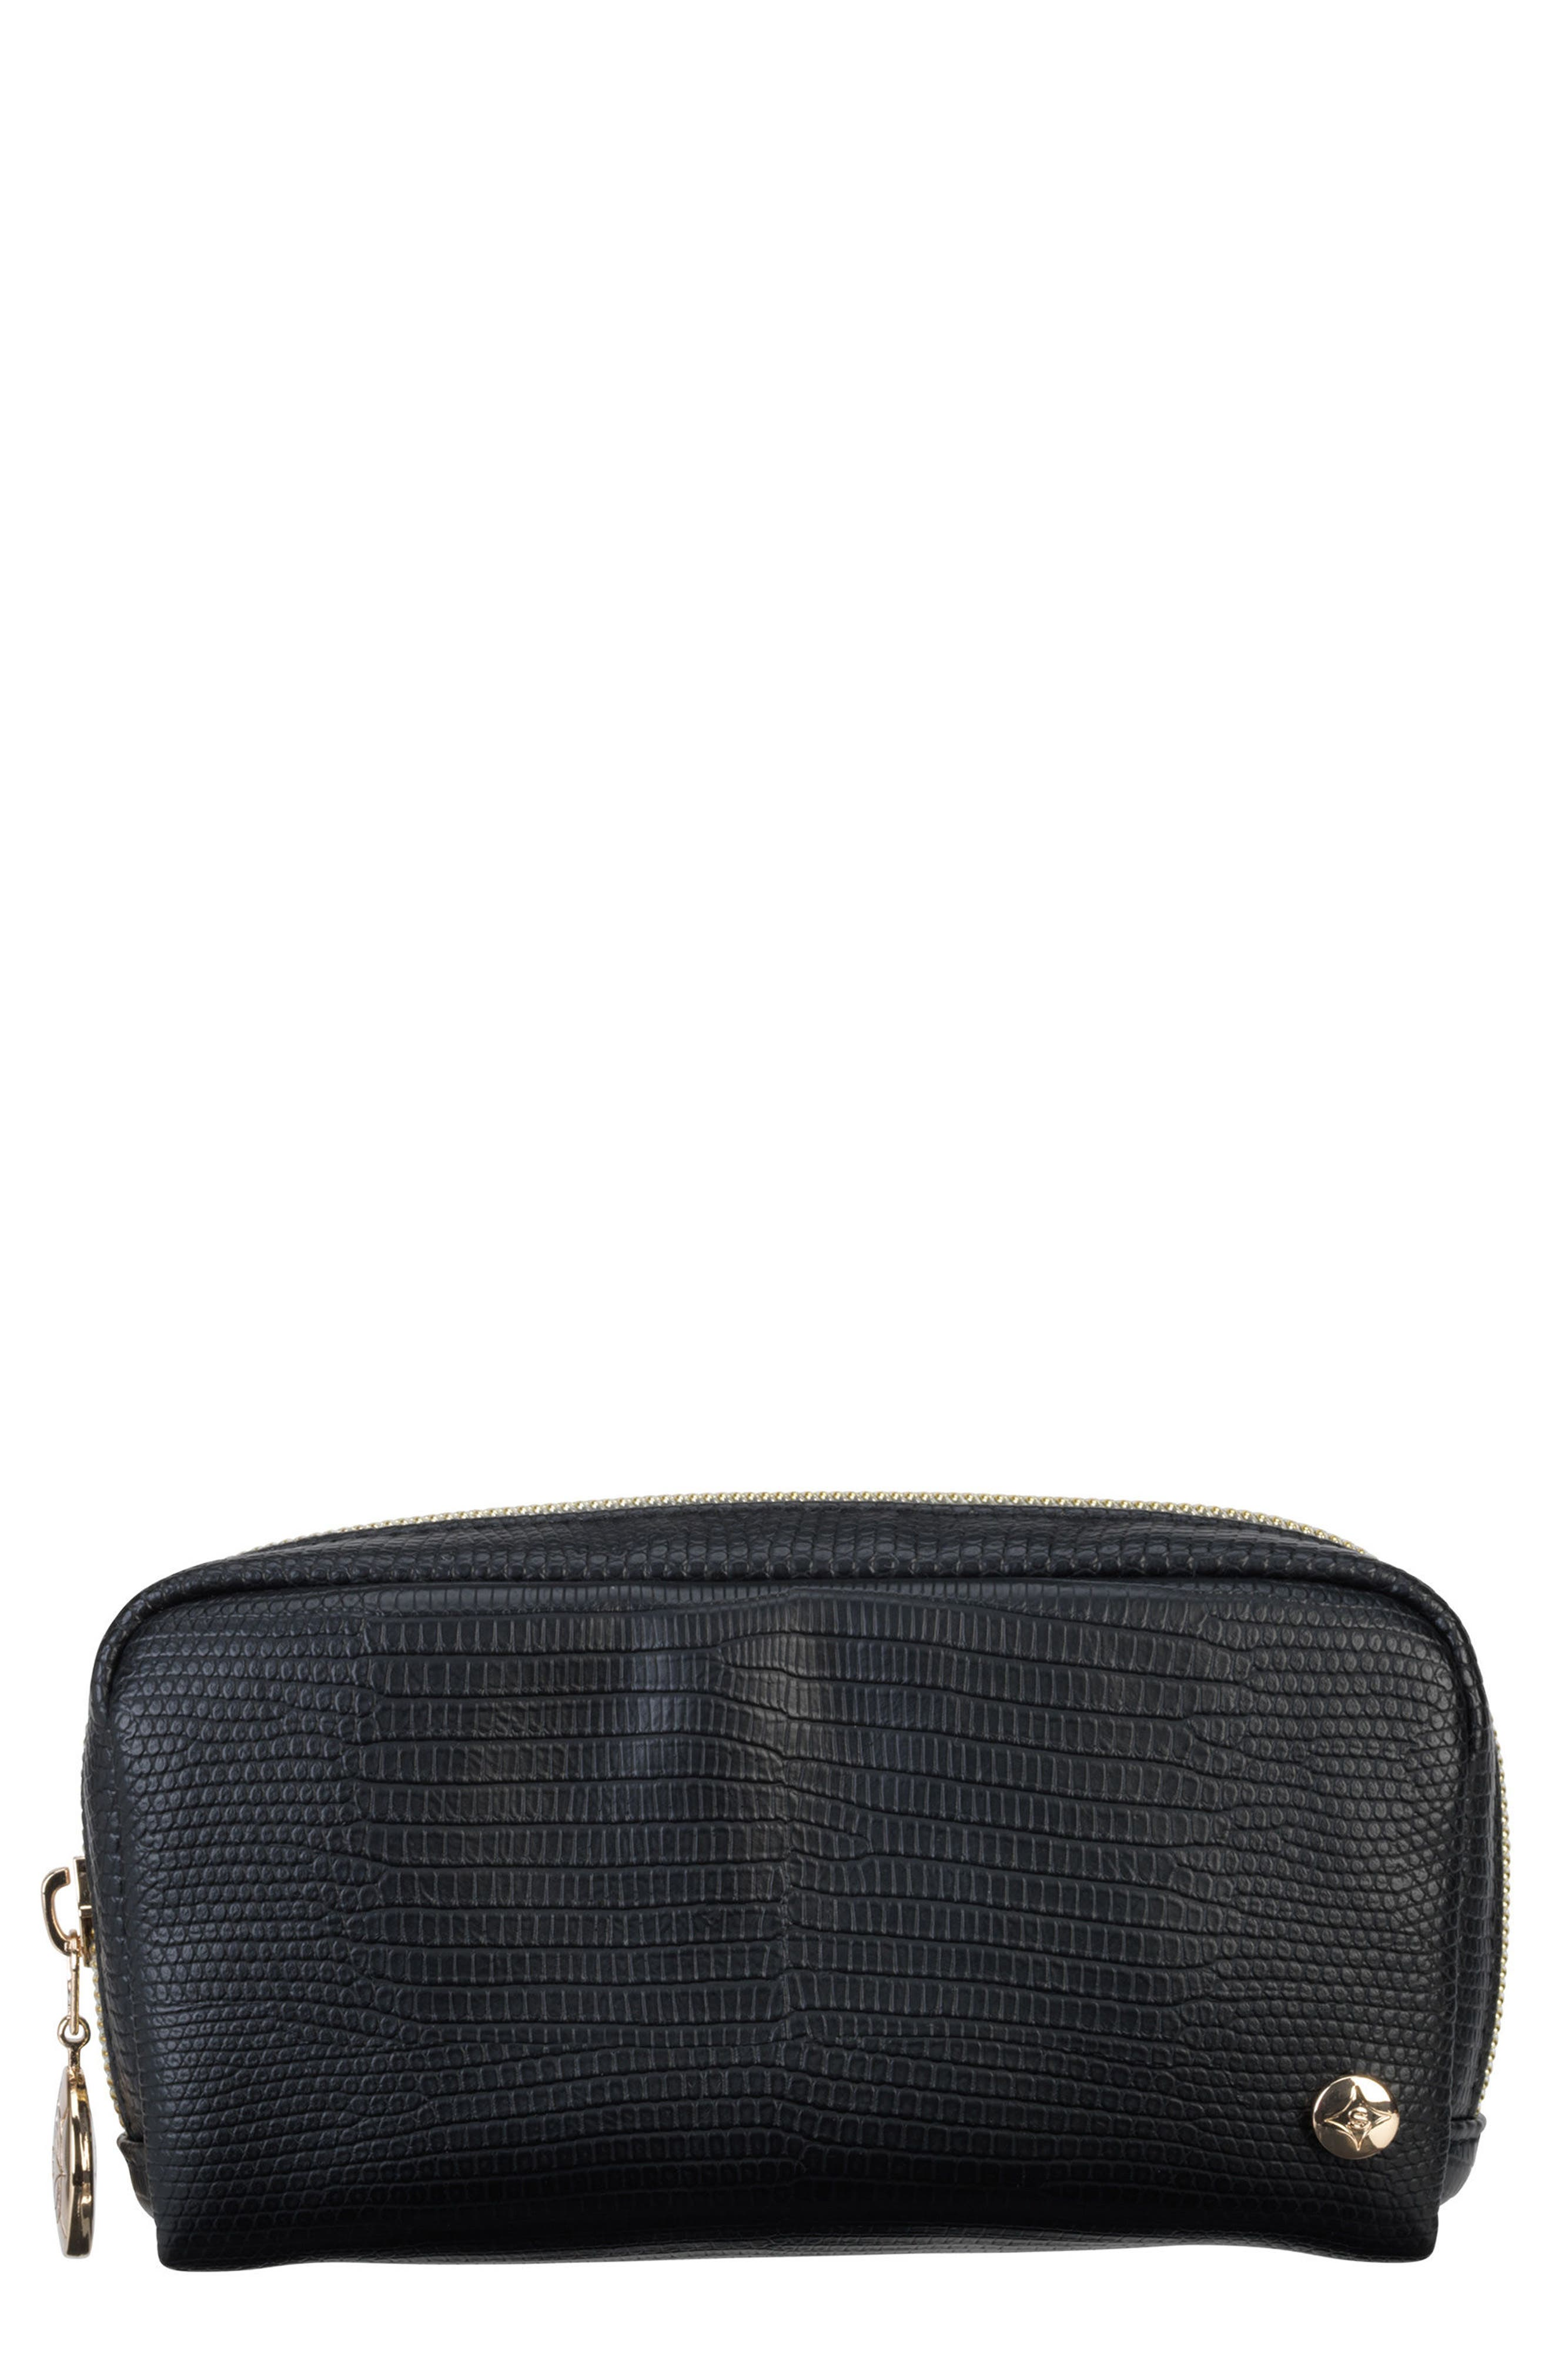 Stephanie Johnson Galapagos Noir Mini Pouch